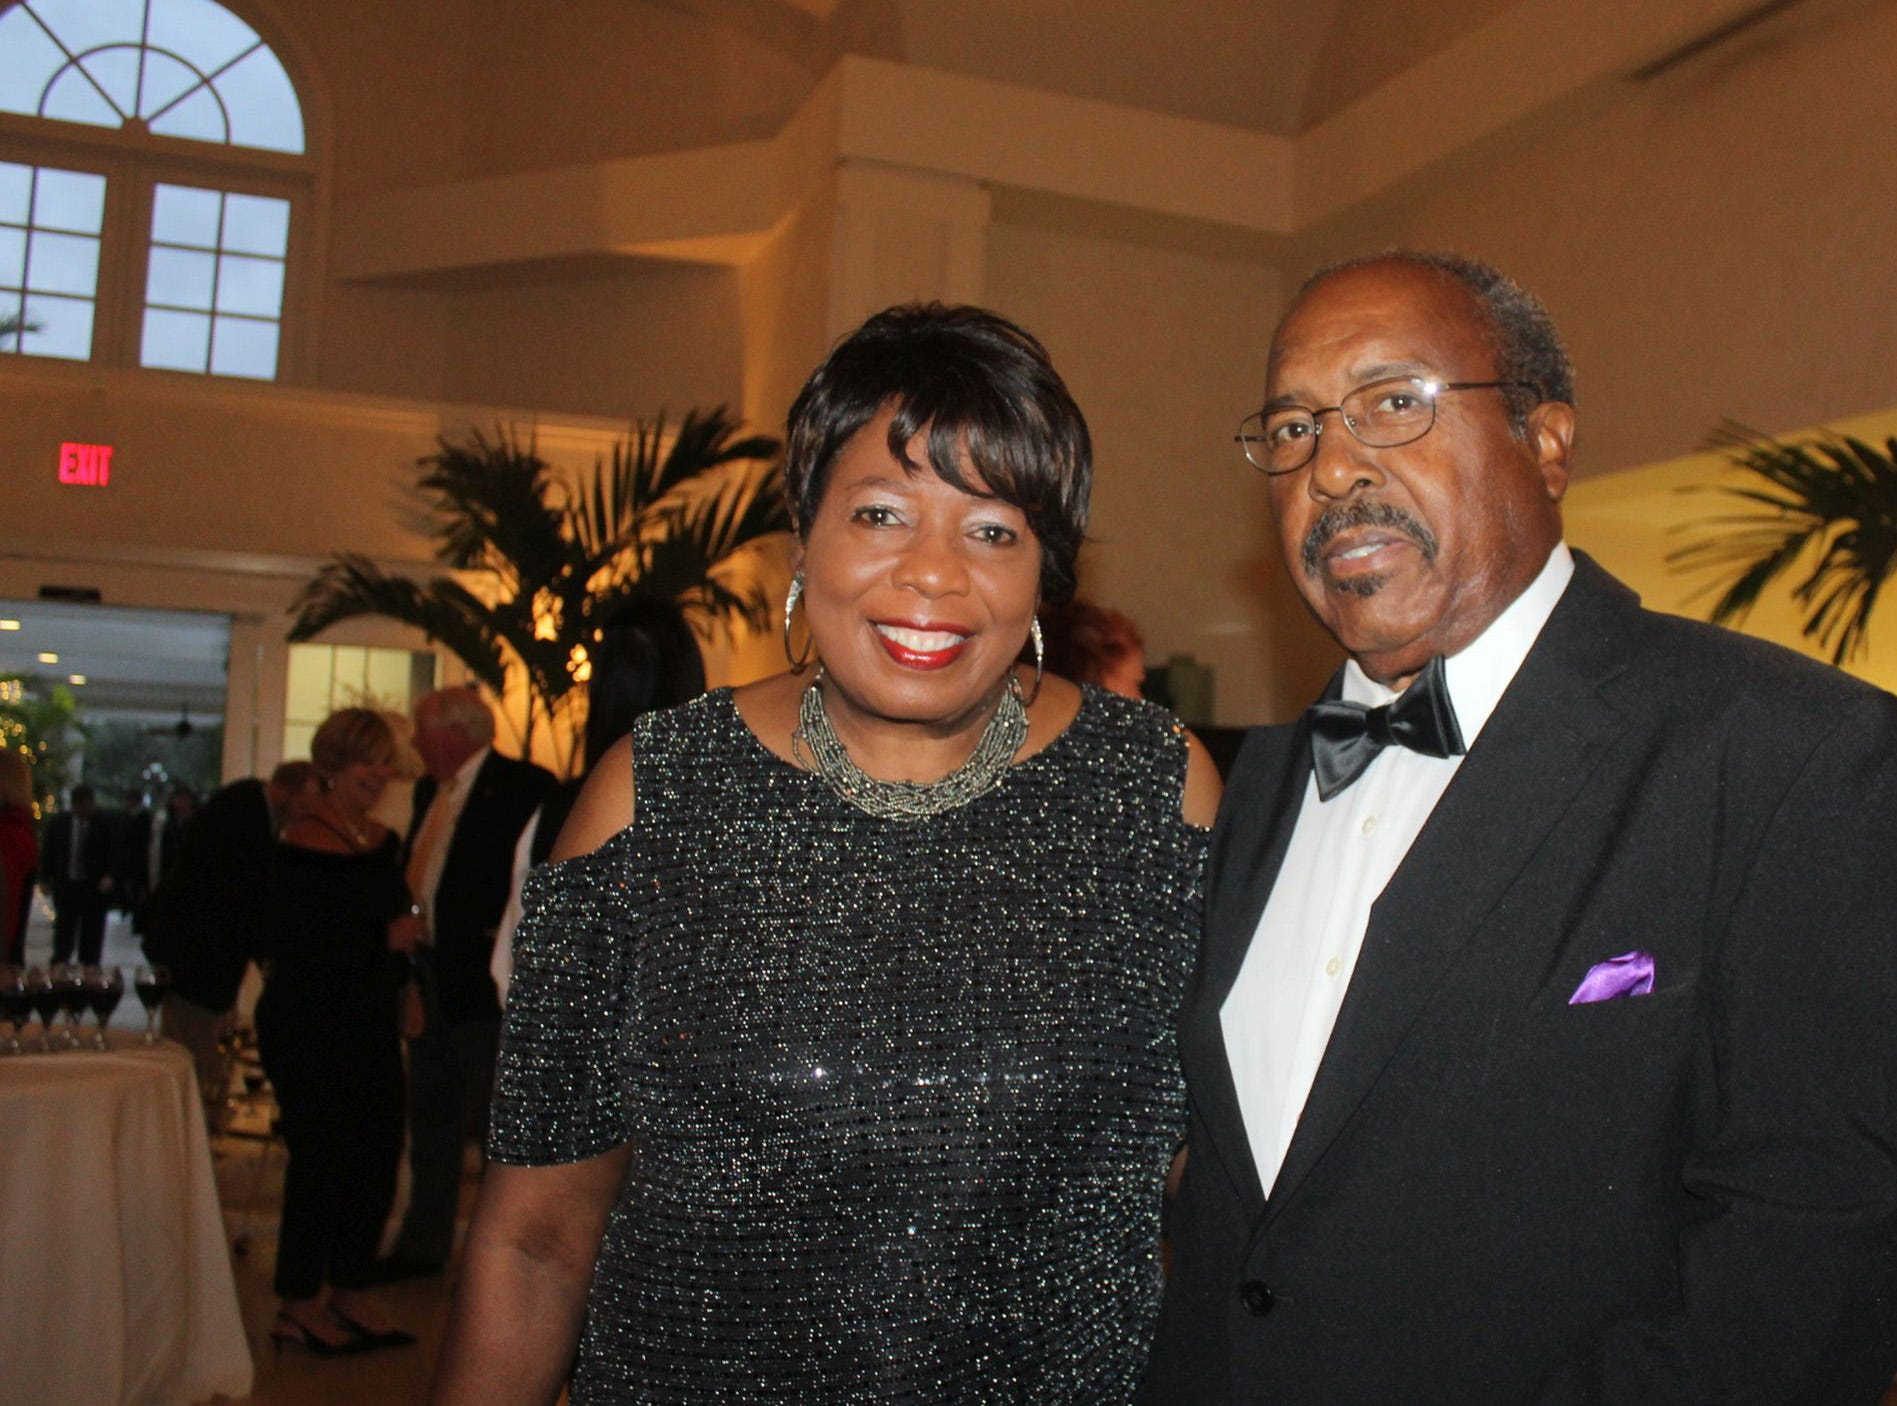 Margaret and George Ingram at the Gifford Youth Achievement Center's Snow Ball on Jan. 26.